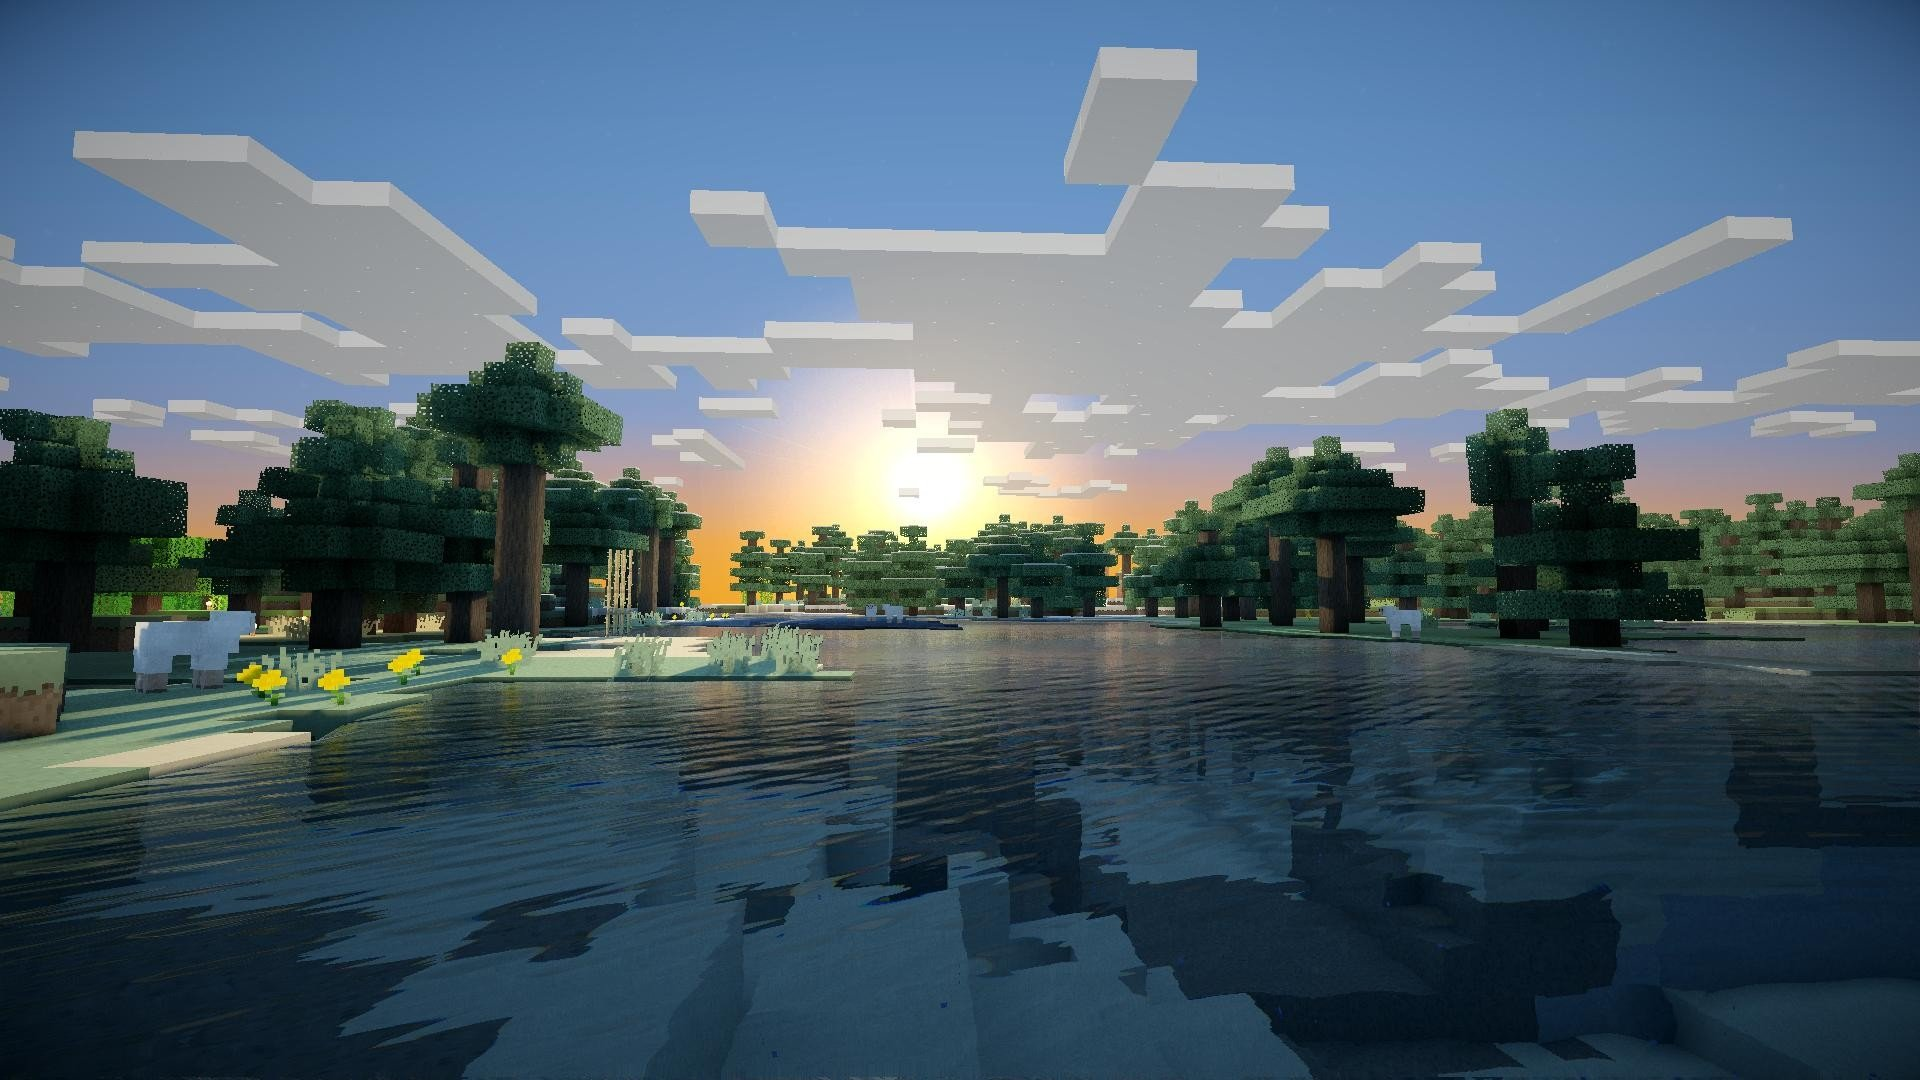 minecraft wallpapers | WallpaperUP